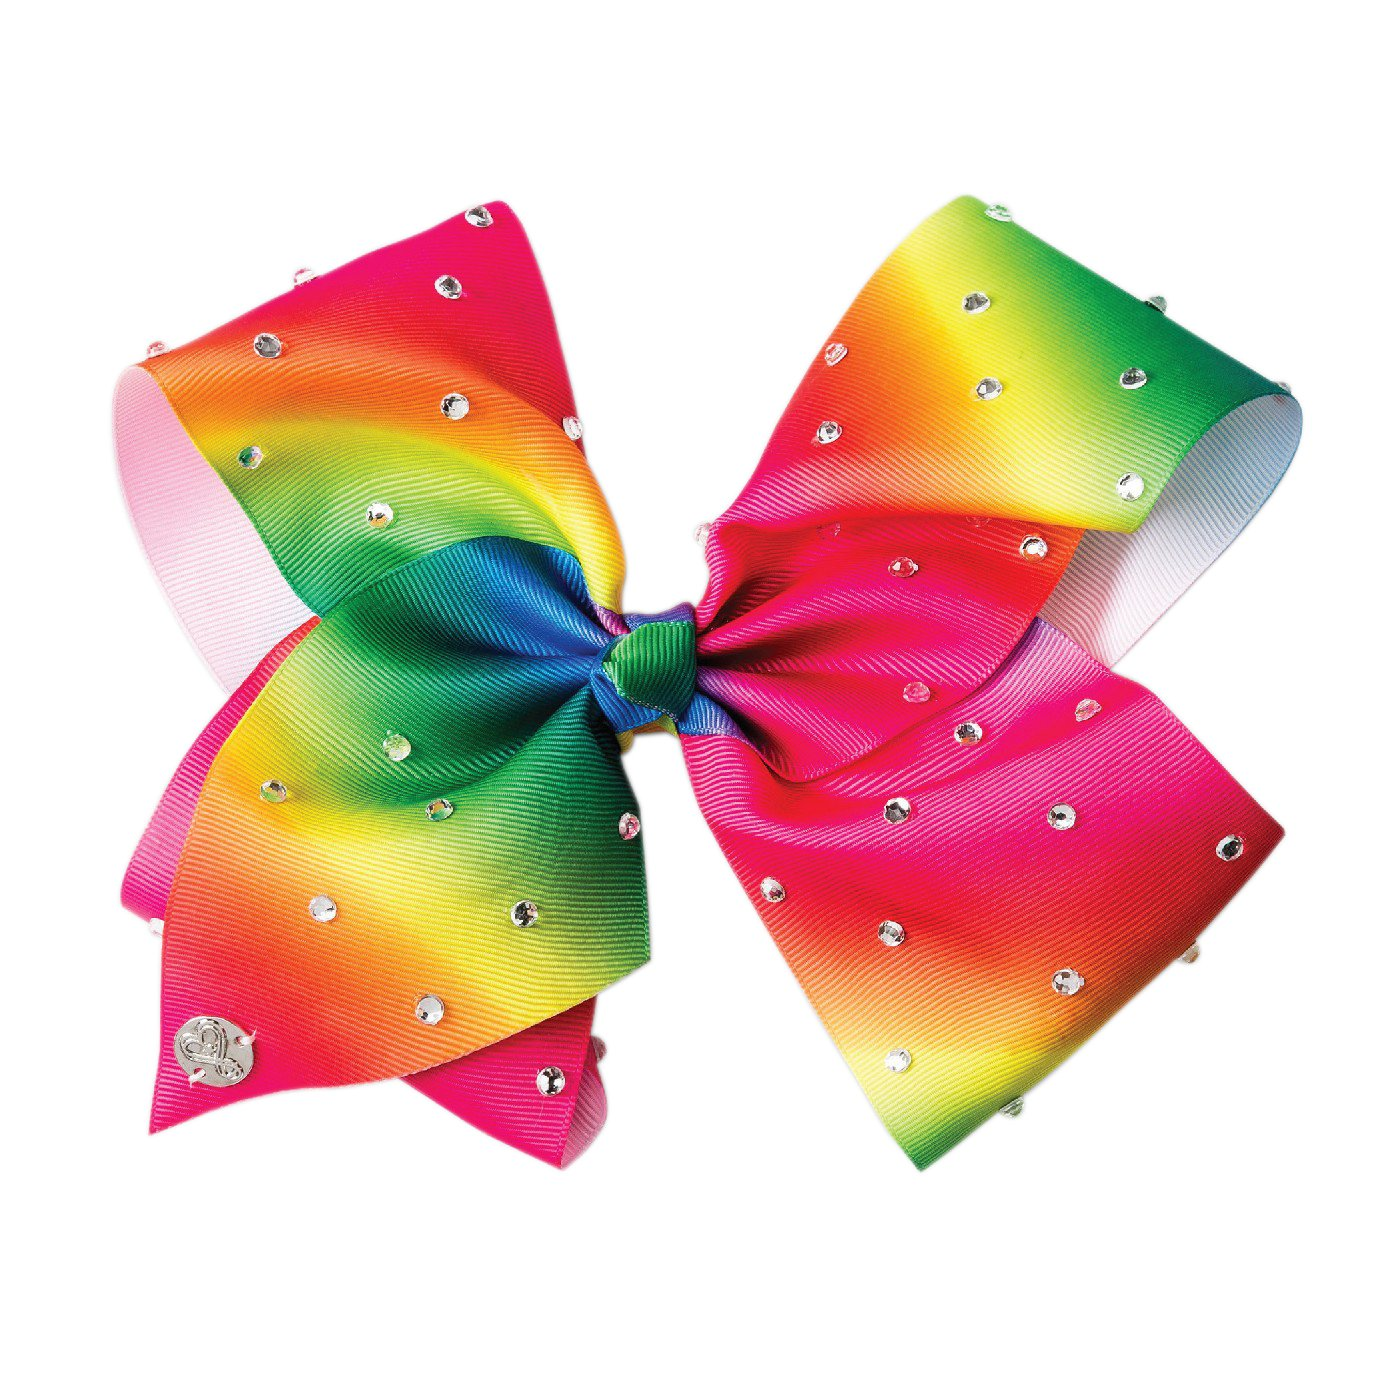 Nickelodeon JoJo Siwa Giant Rainbow Rhinestone Bow Hair Clip HER Accessories B076381XBB